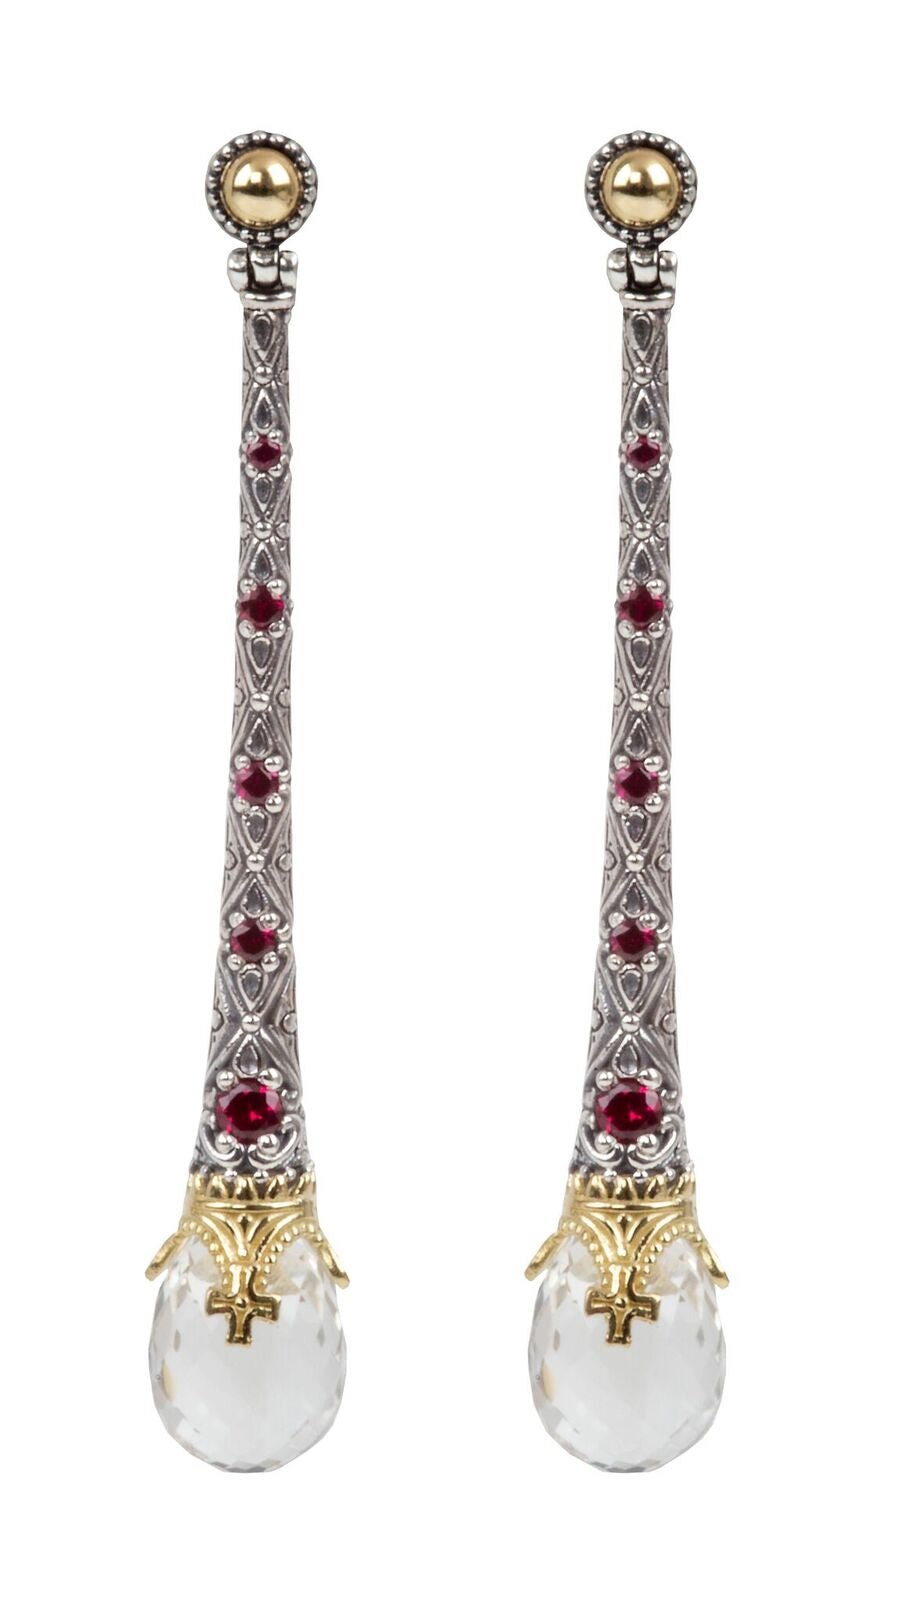 Sterling Silver & 18kt Gold Crystal & Corundum Earrings